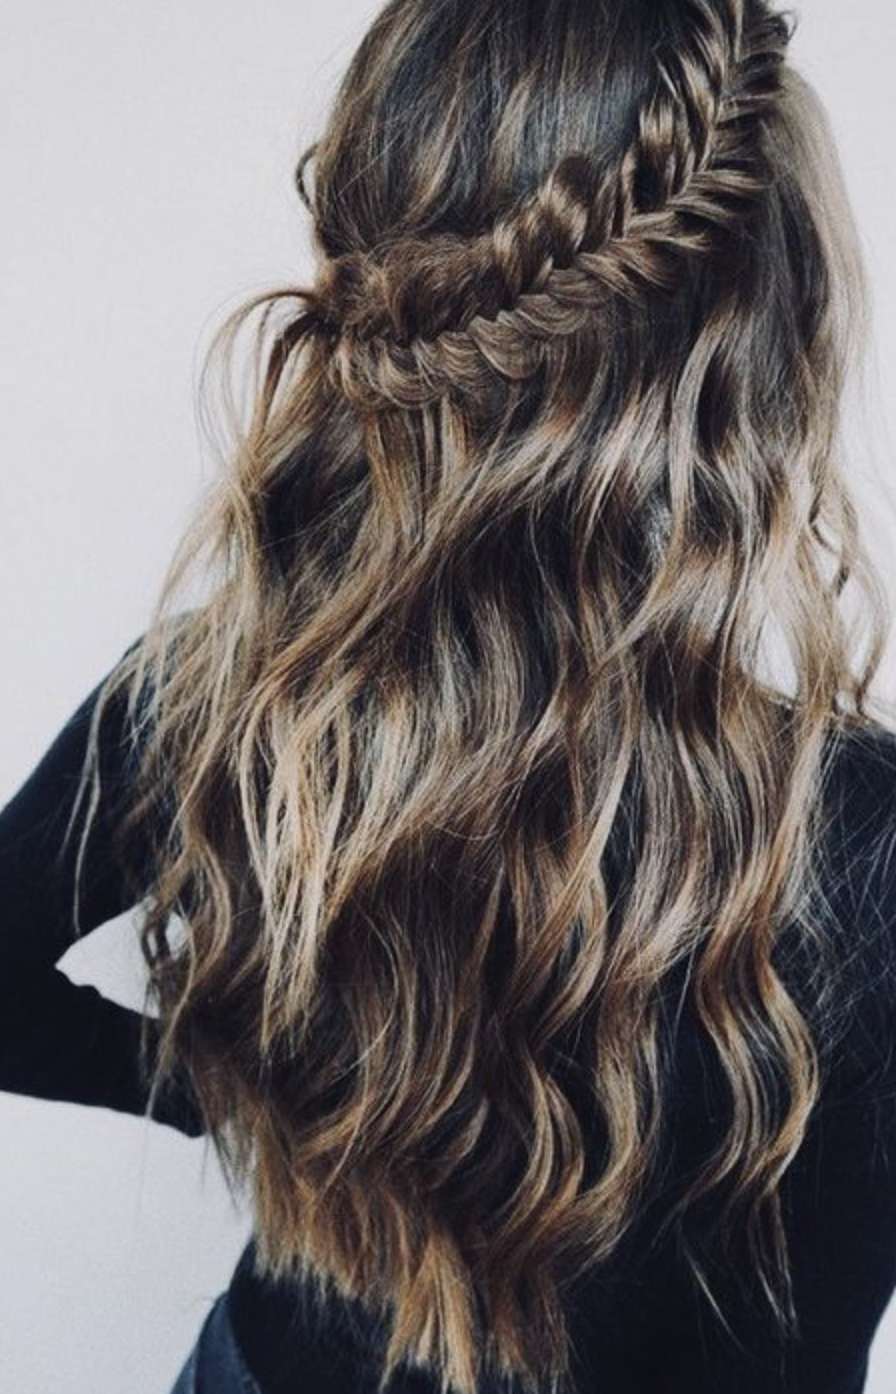 Pin by sophie smith on cute hair ideas pinterest messy braids